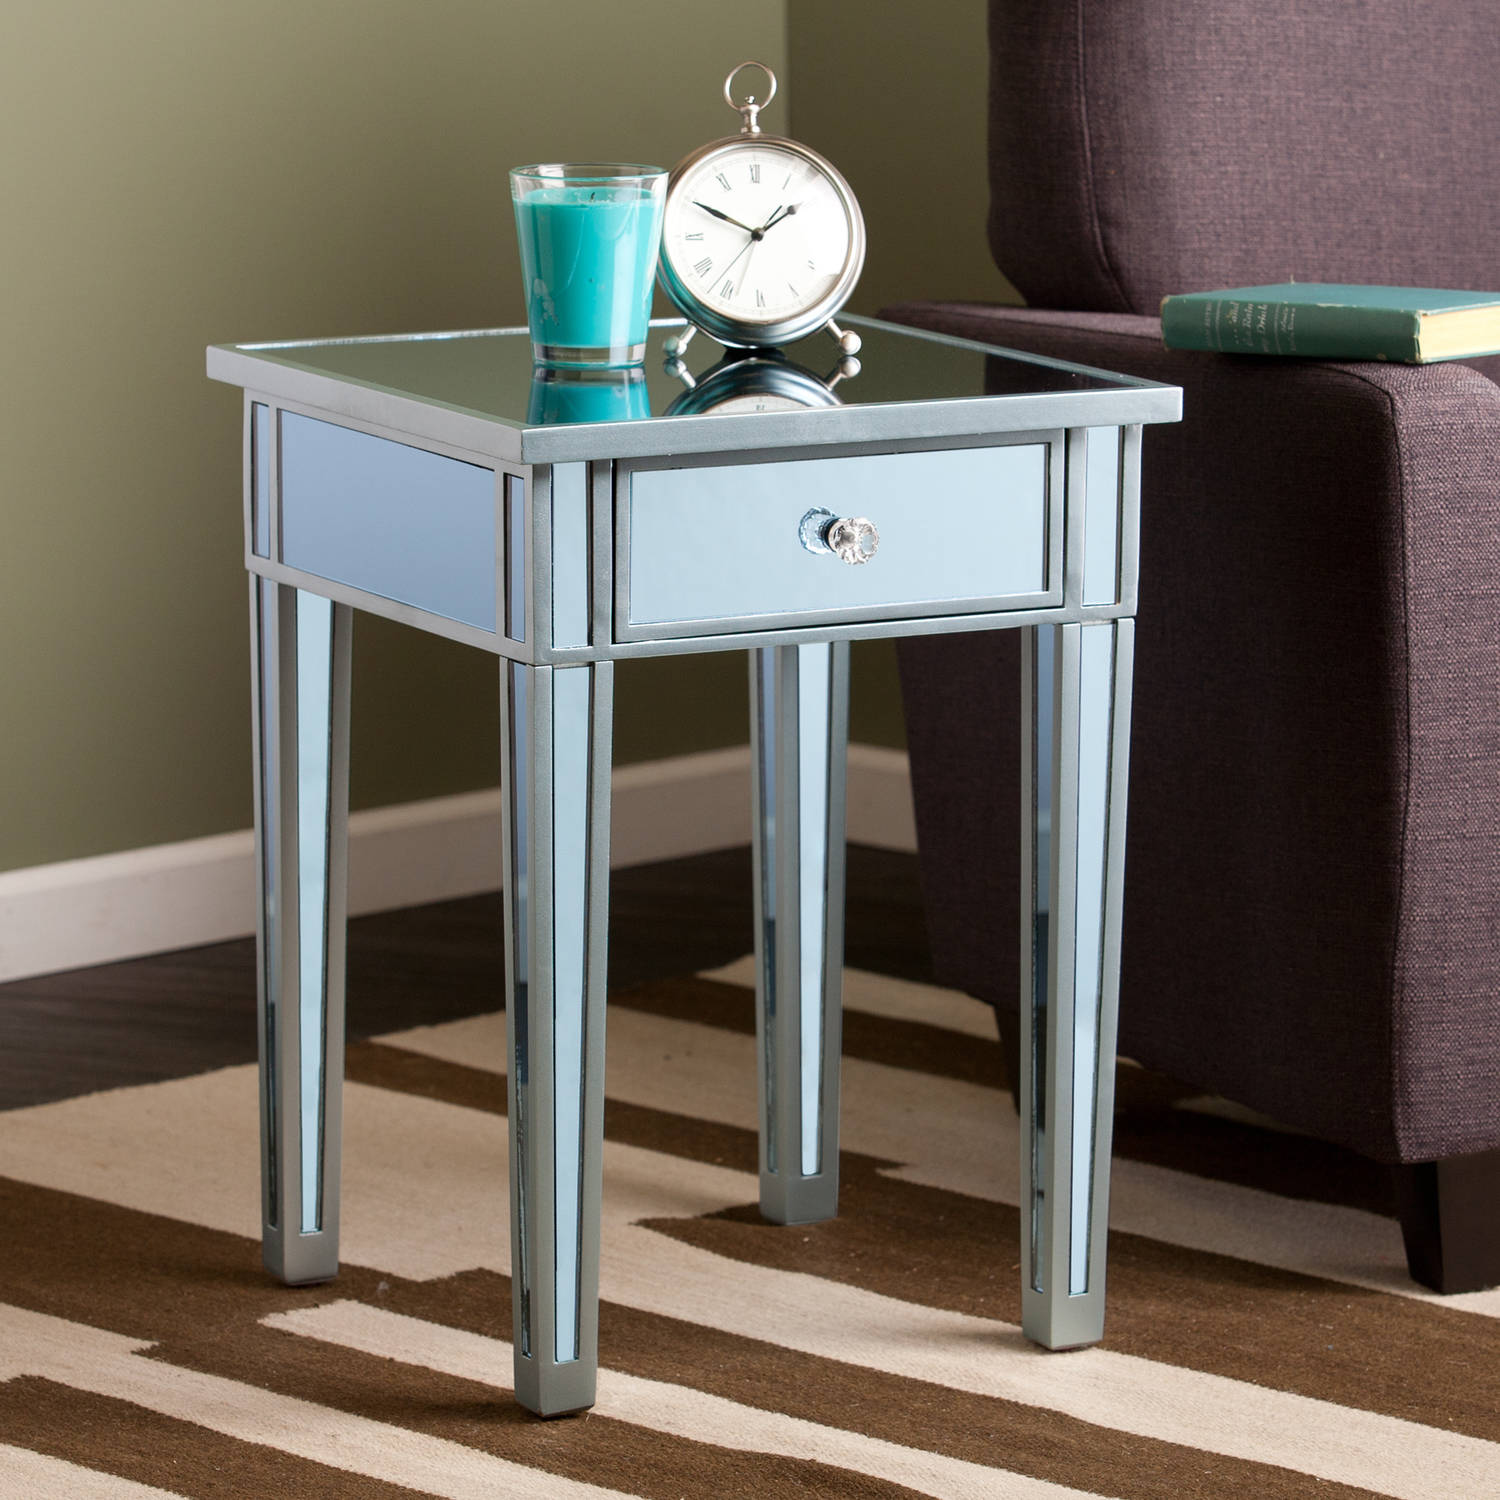 drop gorgeous teal blue accent table mats runners target napkins drugs tablet command tables tablecloth roll runne msj placemats decorations spawn and painting colored divorce